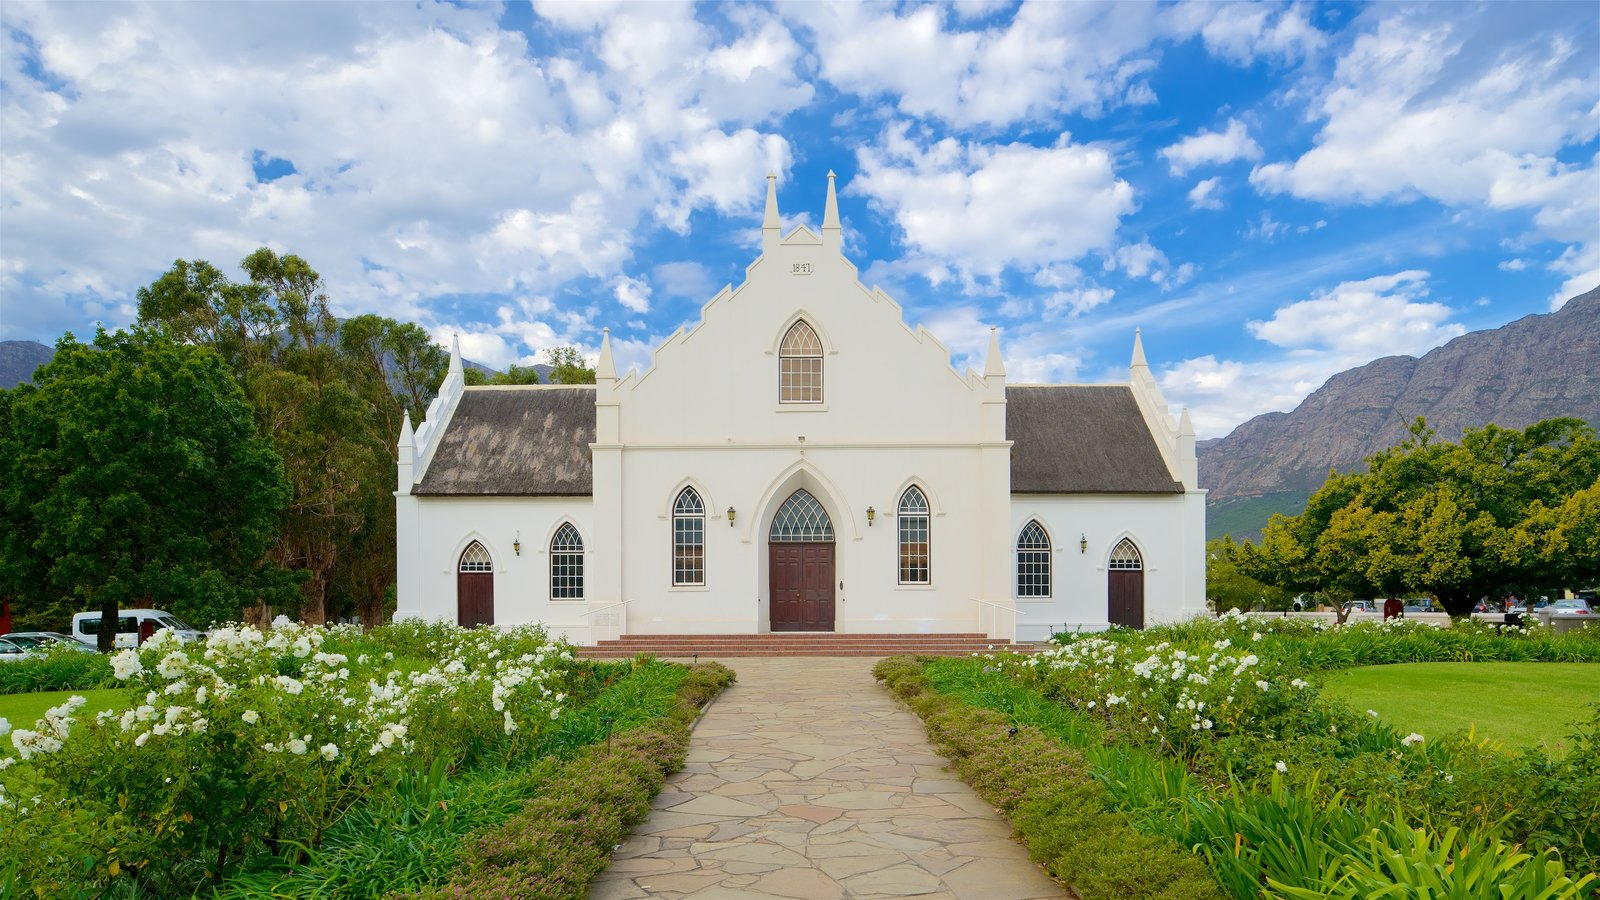 Franschhoek featuring flowers, a church or cathedral and heritage architecture